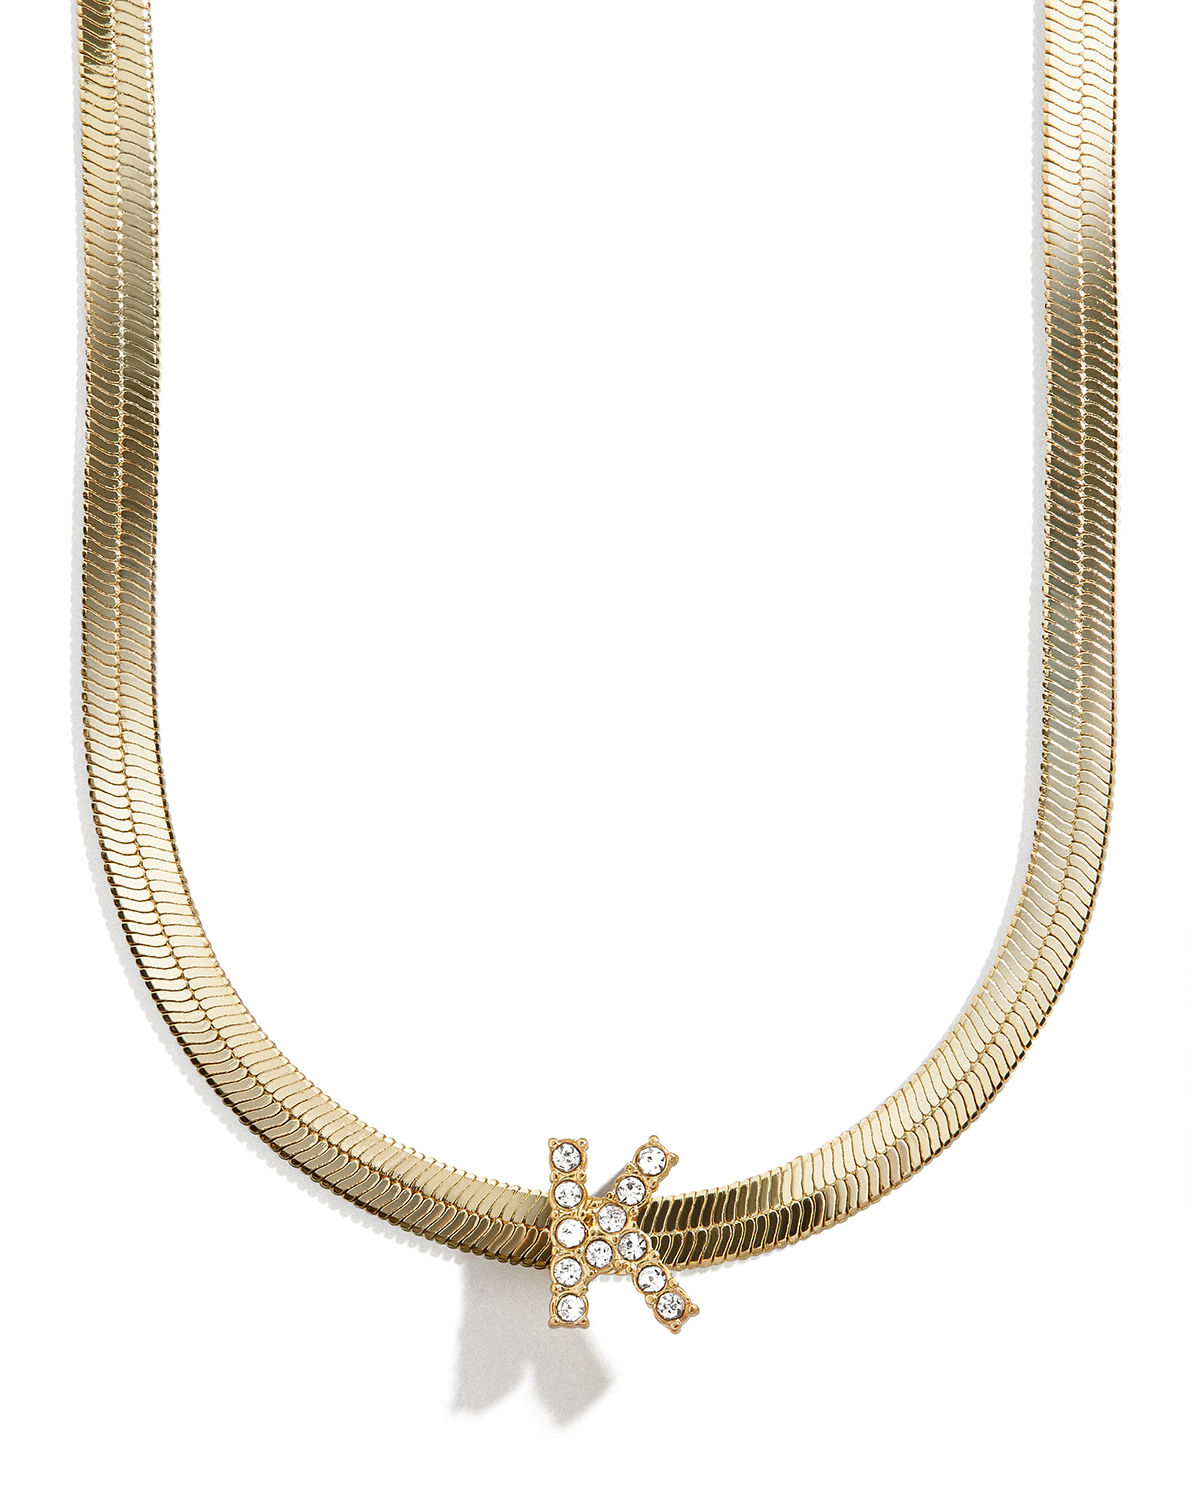 Baublebar Necklaces GINA INITIAL NECKLACE